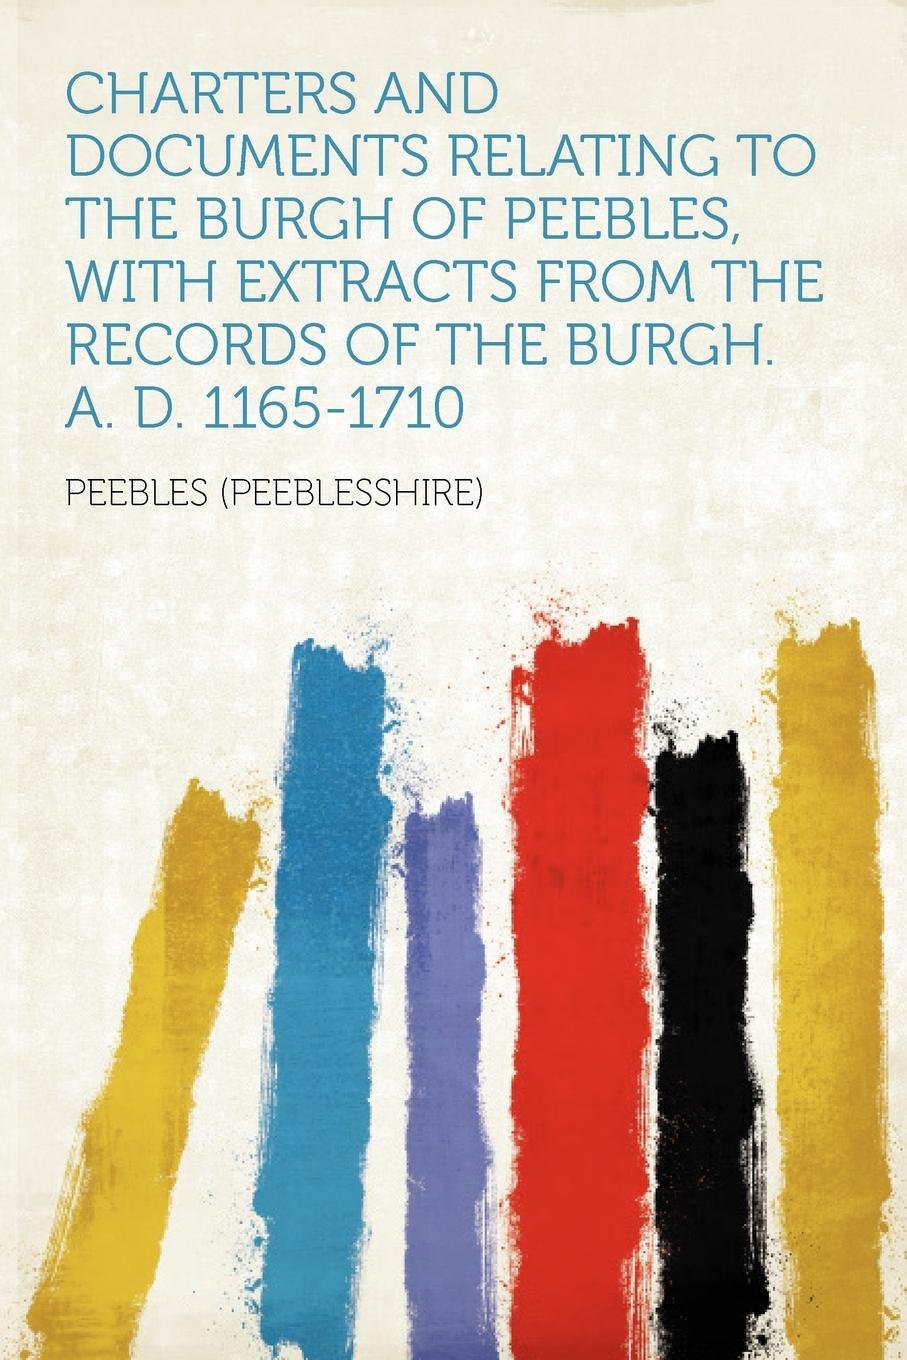 Read Online Charters and Documents Relating to the Burgh of Peebles, With Extracts From the Records of the Burgh. A. D. 1165-1710 PDF